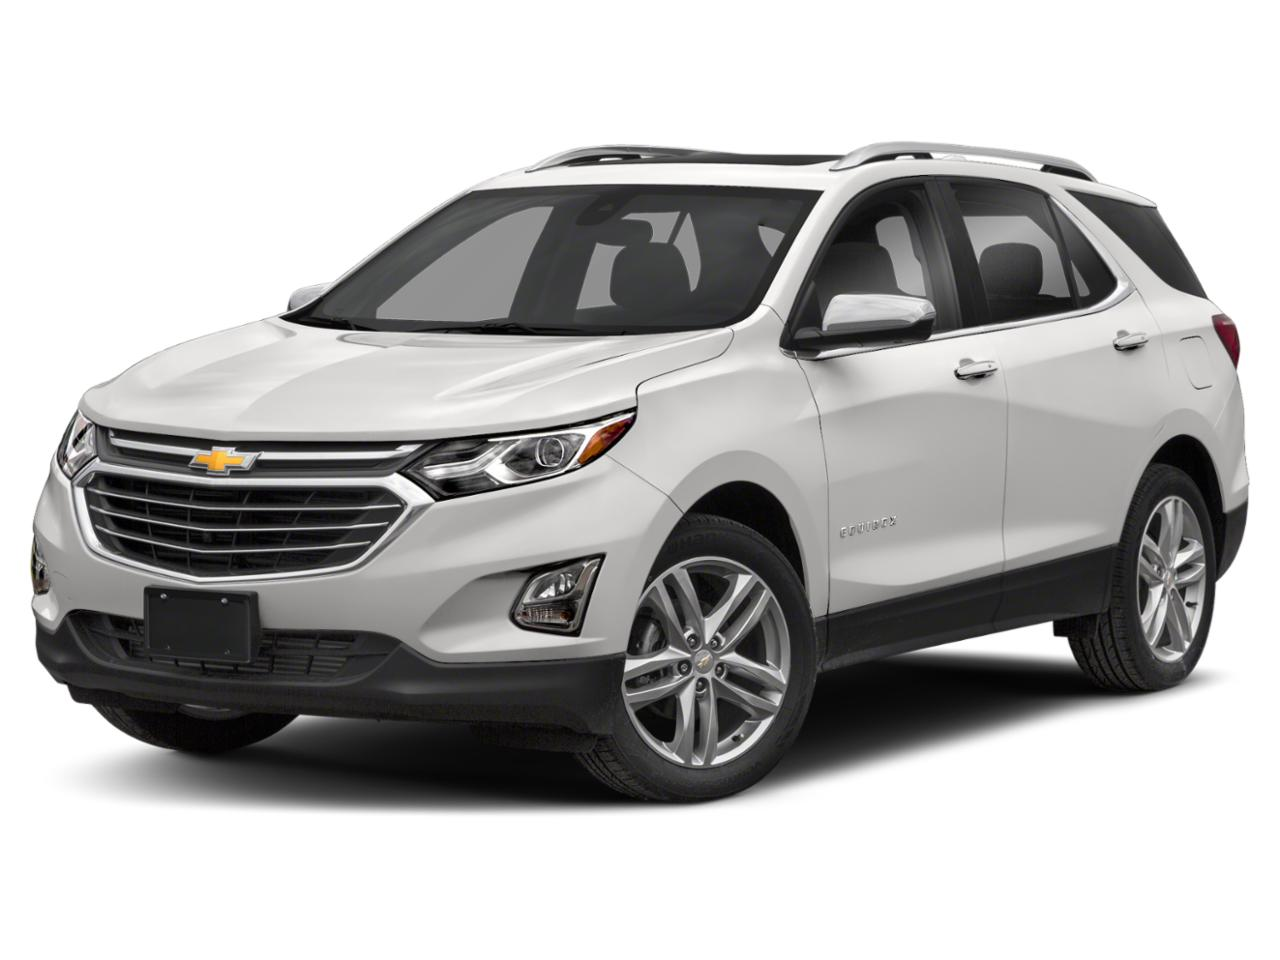 2020 Chevrolet Equinox Vehicle Photo in Corsicana, TX 75110